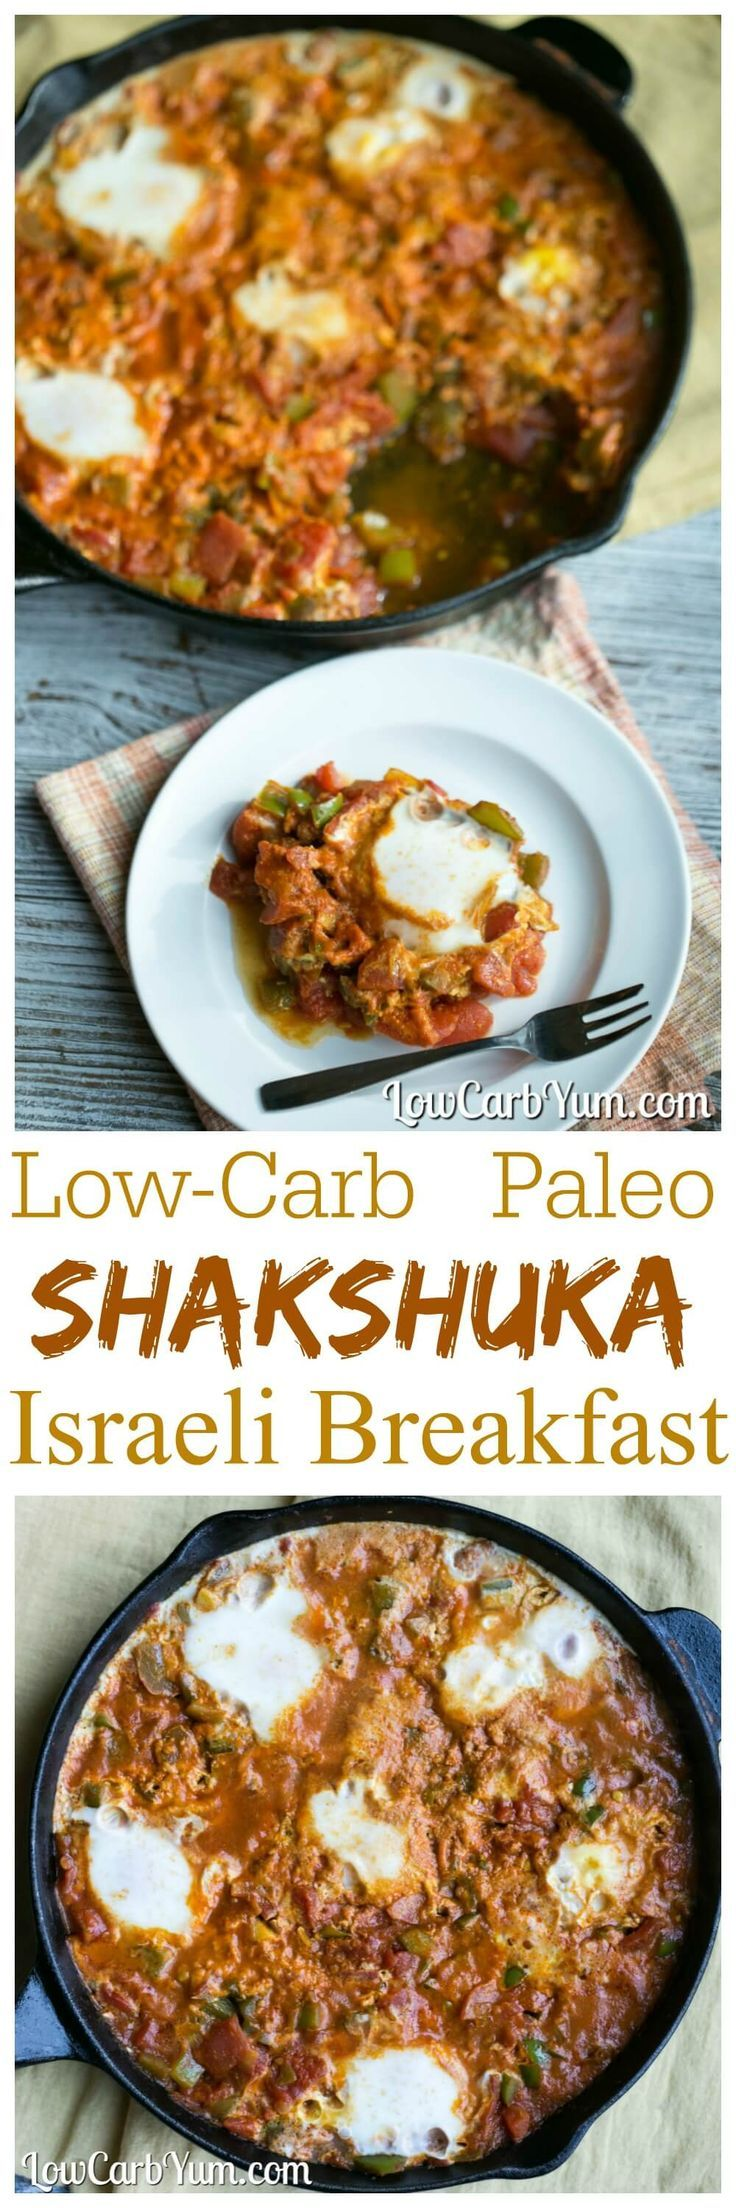 You don't have to give up your favorite foods after moving to a paleo and gluten-free diet. The New Yiddish Cookbook has many recipes like this Shakshuka.